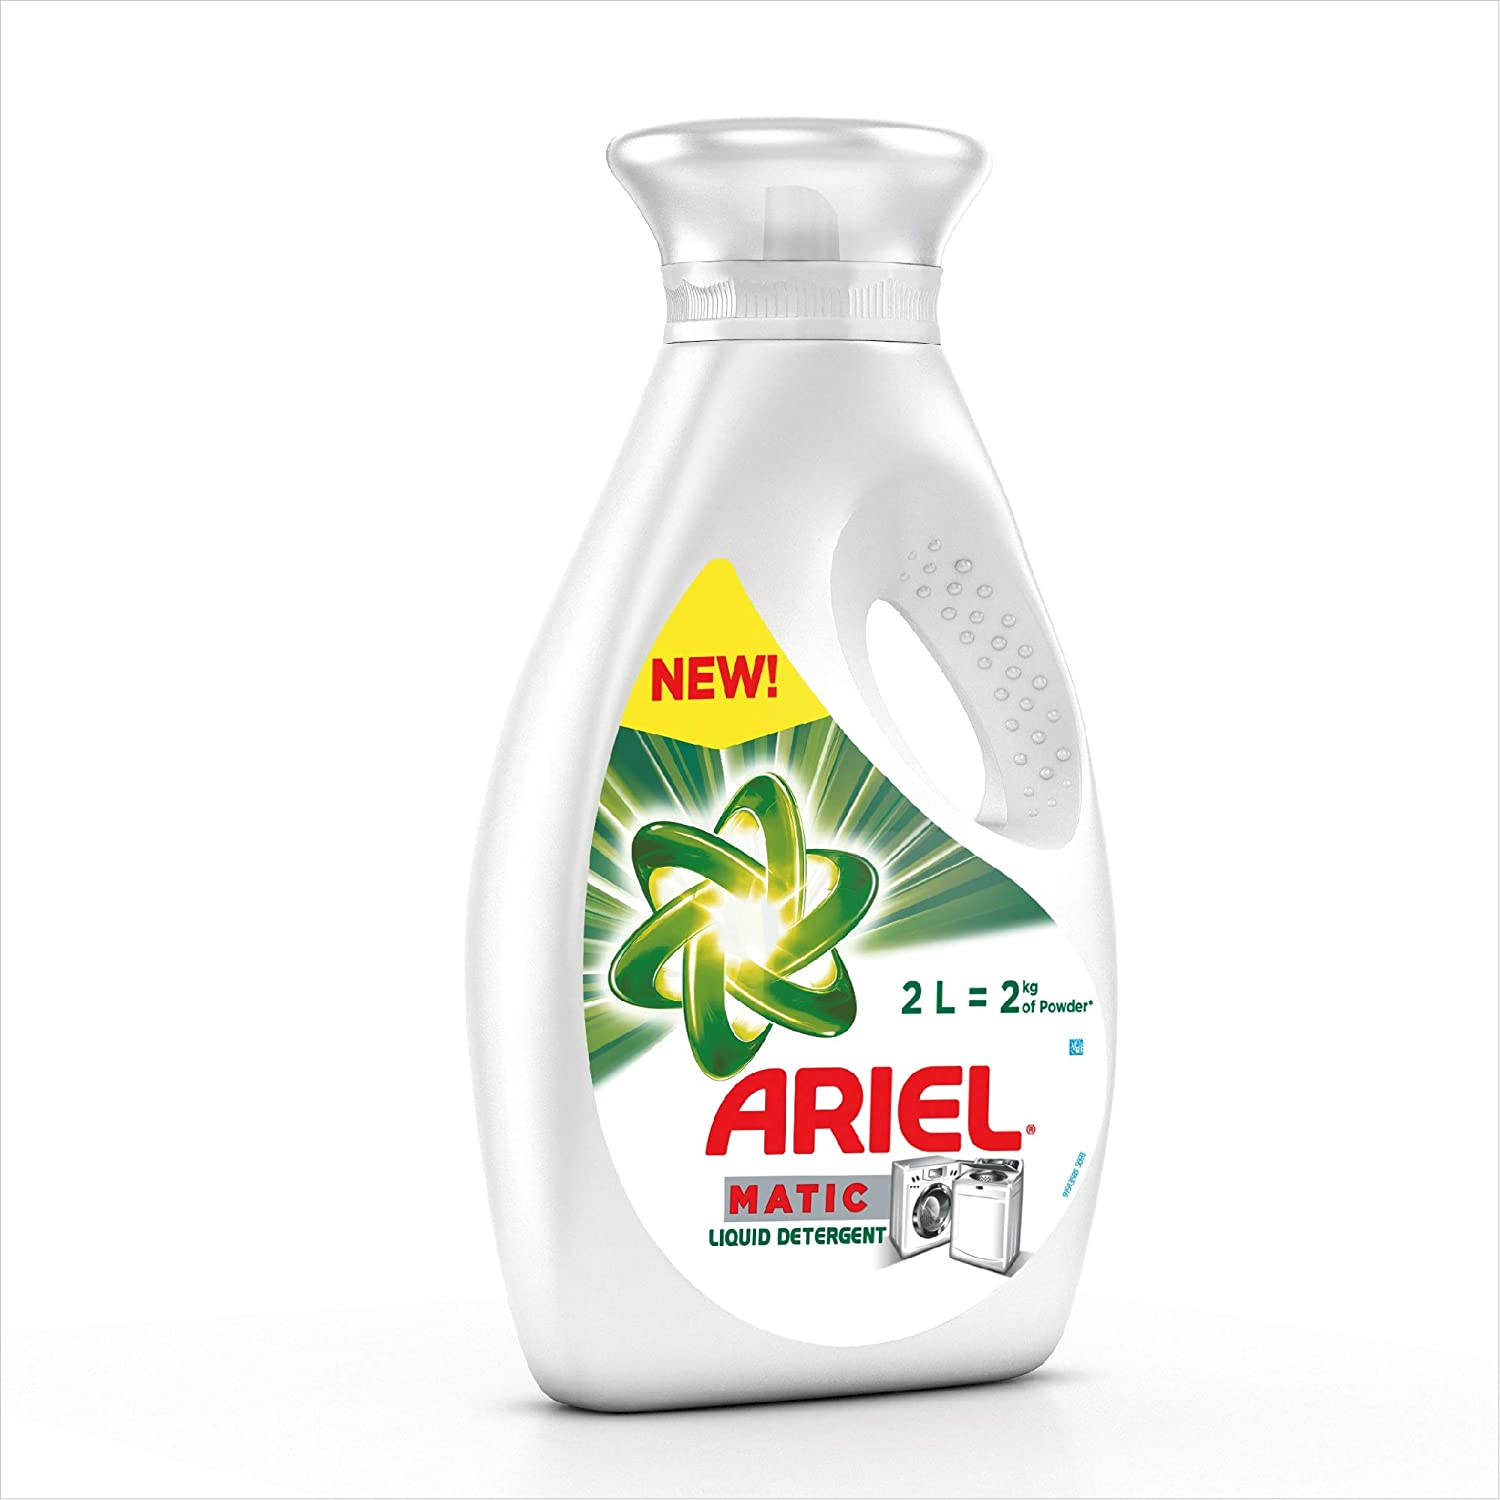 Ariel Matic Front Load Liquid Detergent (Bottle)